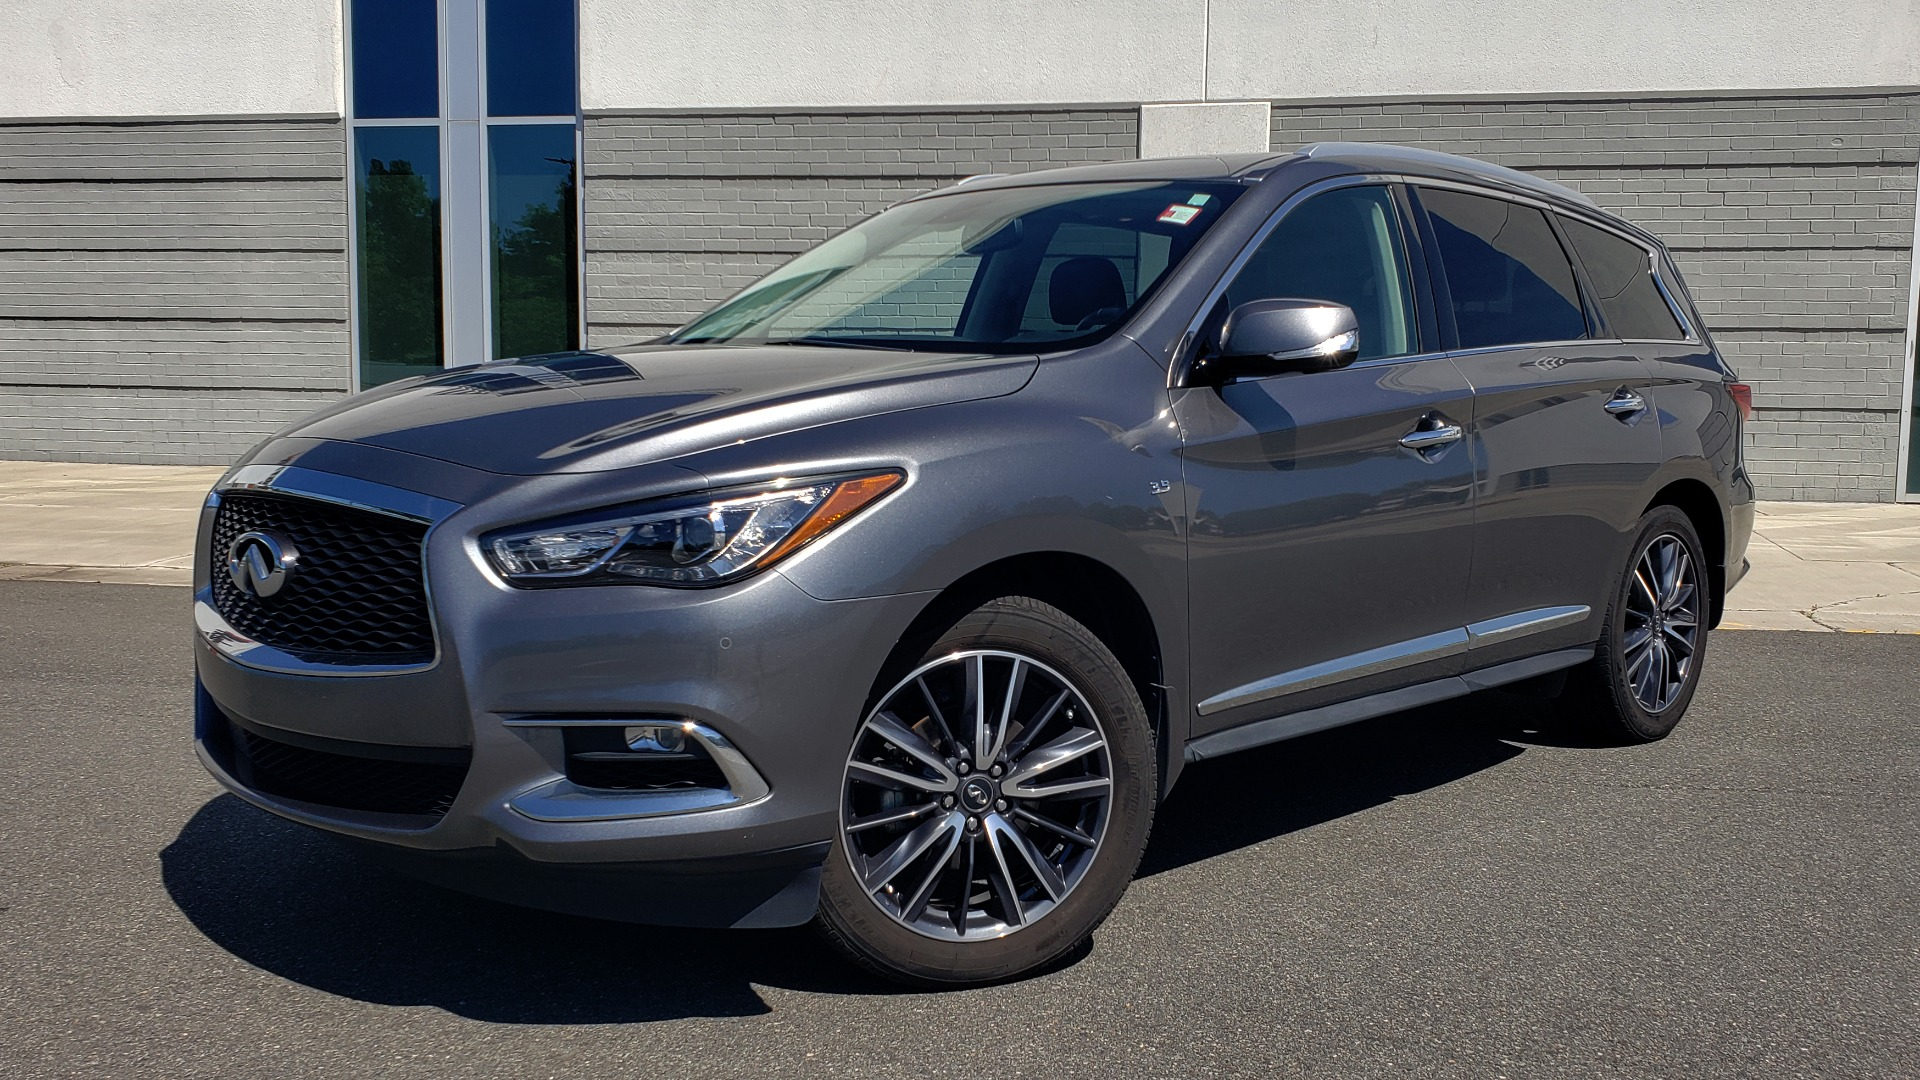 Used 2018 INFINITI QX60 3.5L V6 / FWD / CVT TRANS / NAV / SUNROOF / 3-ROWS / REARVIEW for sale $31,999 at Formula Imports in Charlotte NC 28227 1